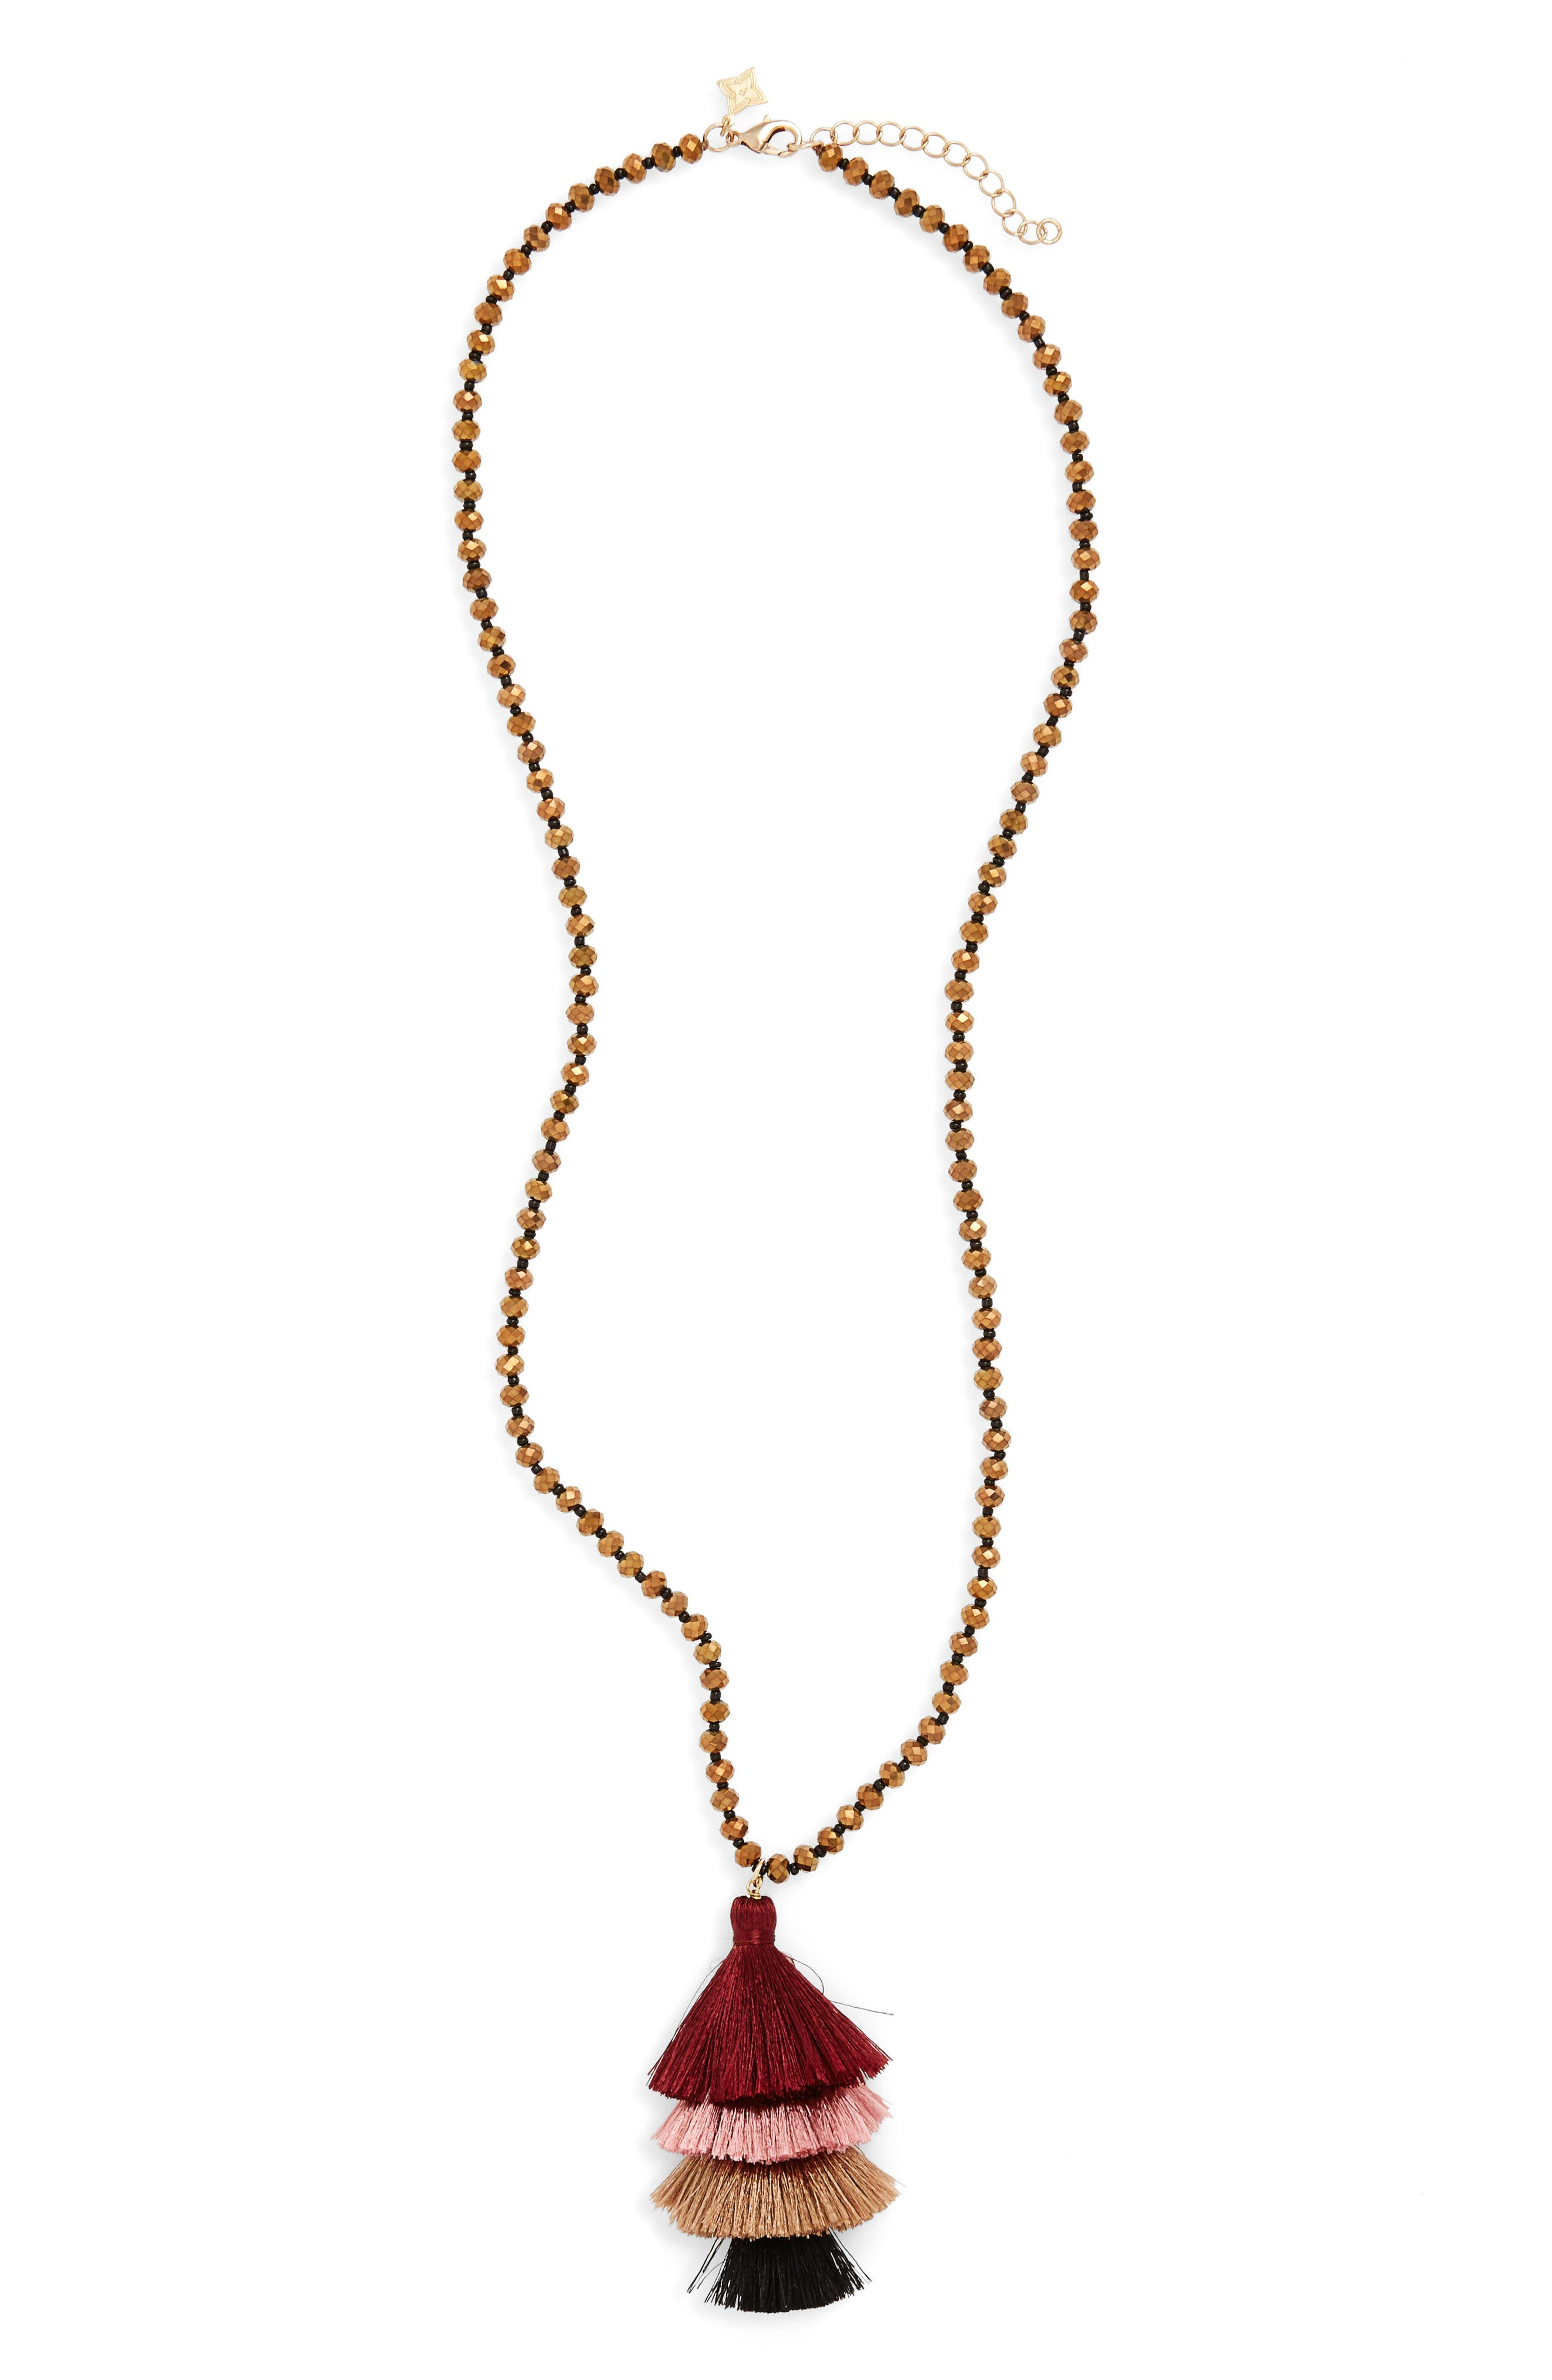 Stacked Tassel Necklace,                             Main thumbnail 1, color,                             930